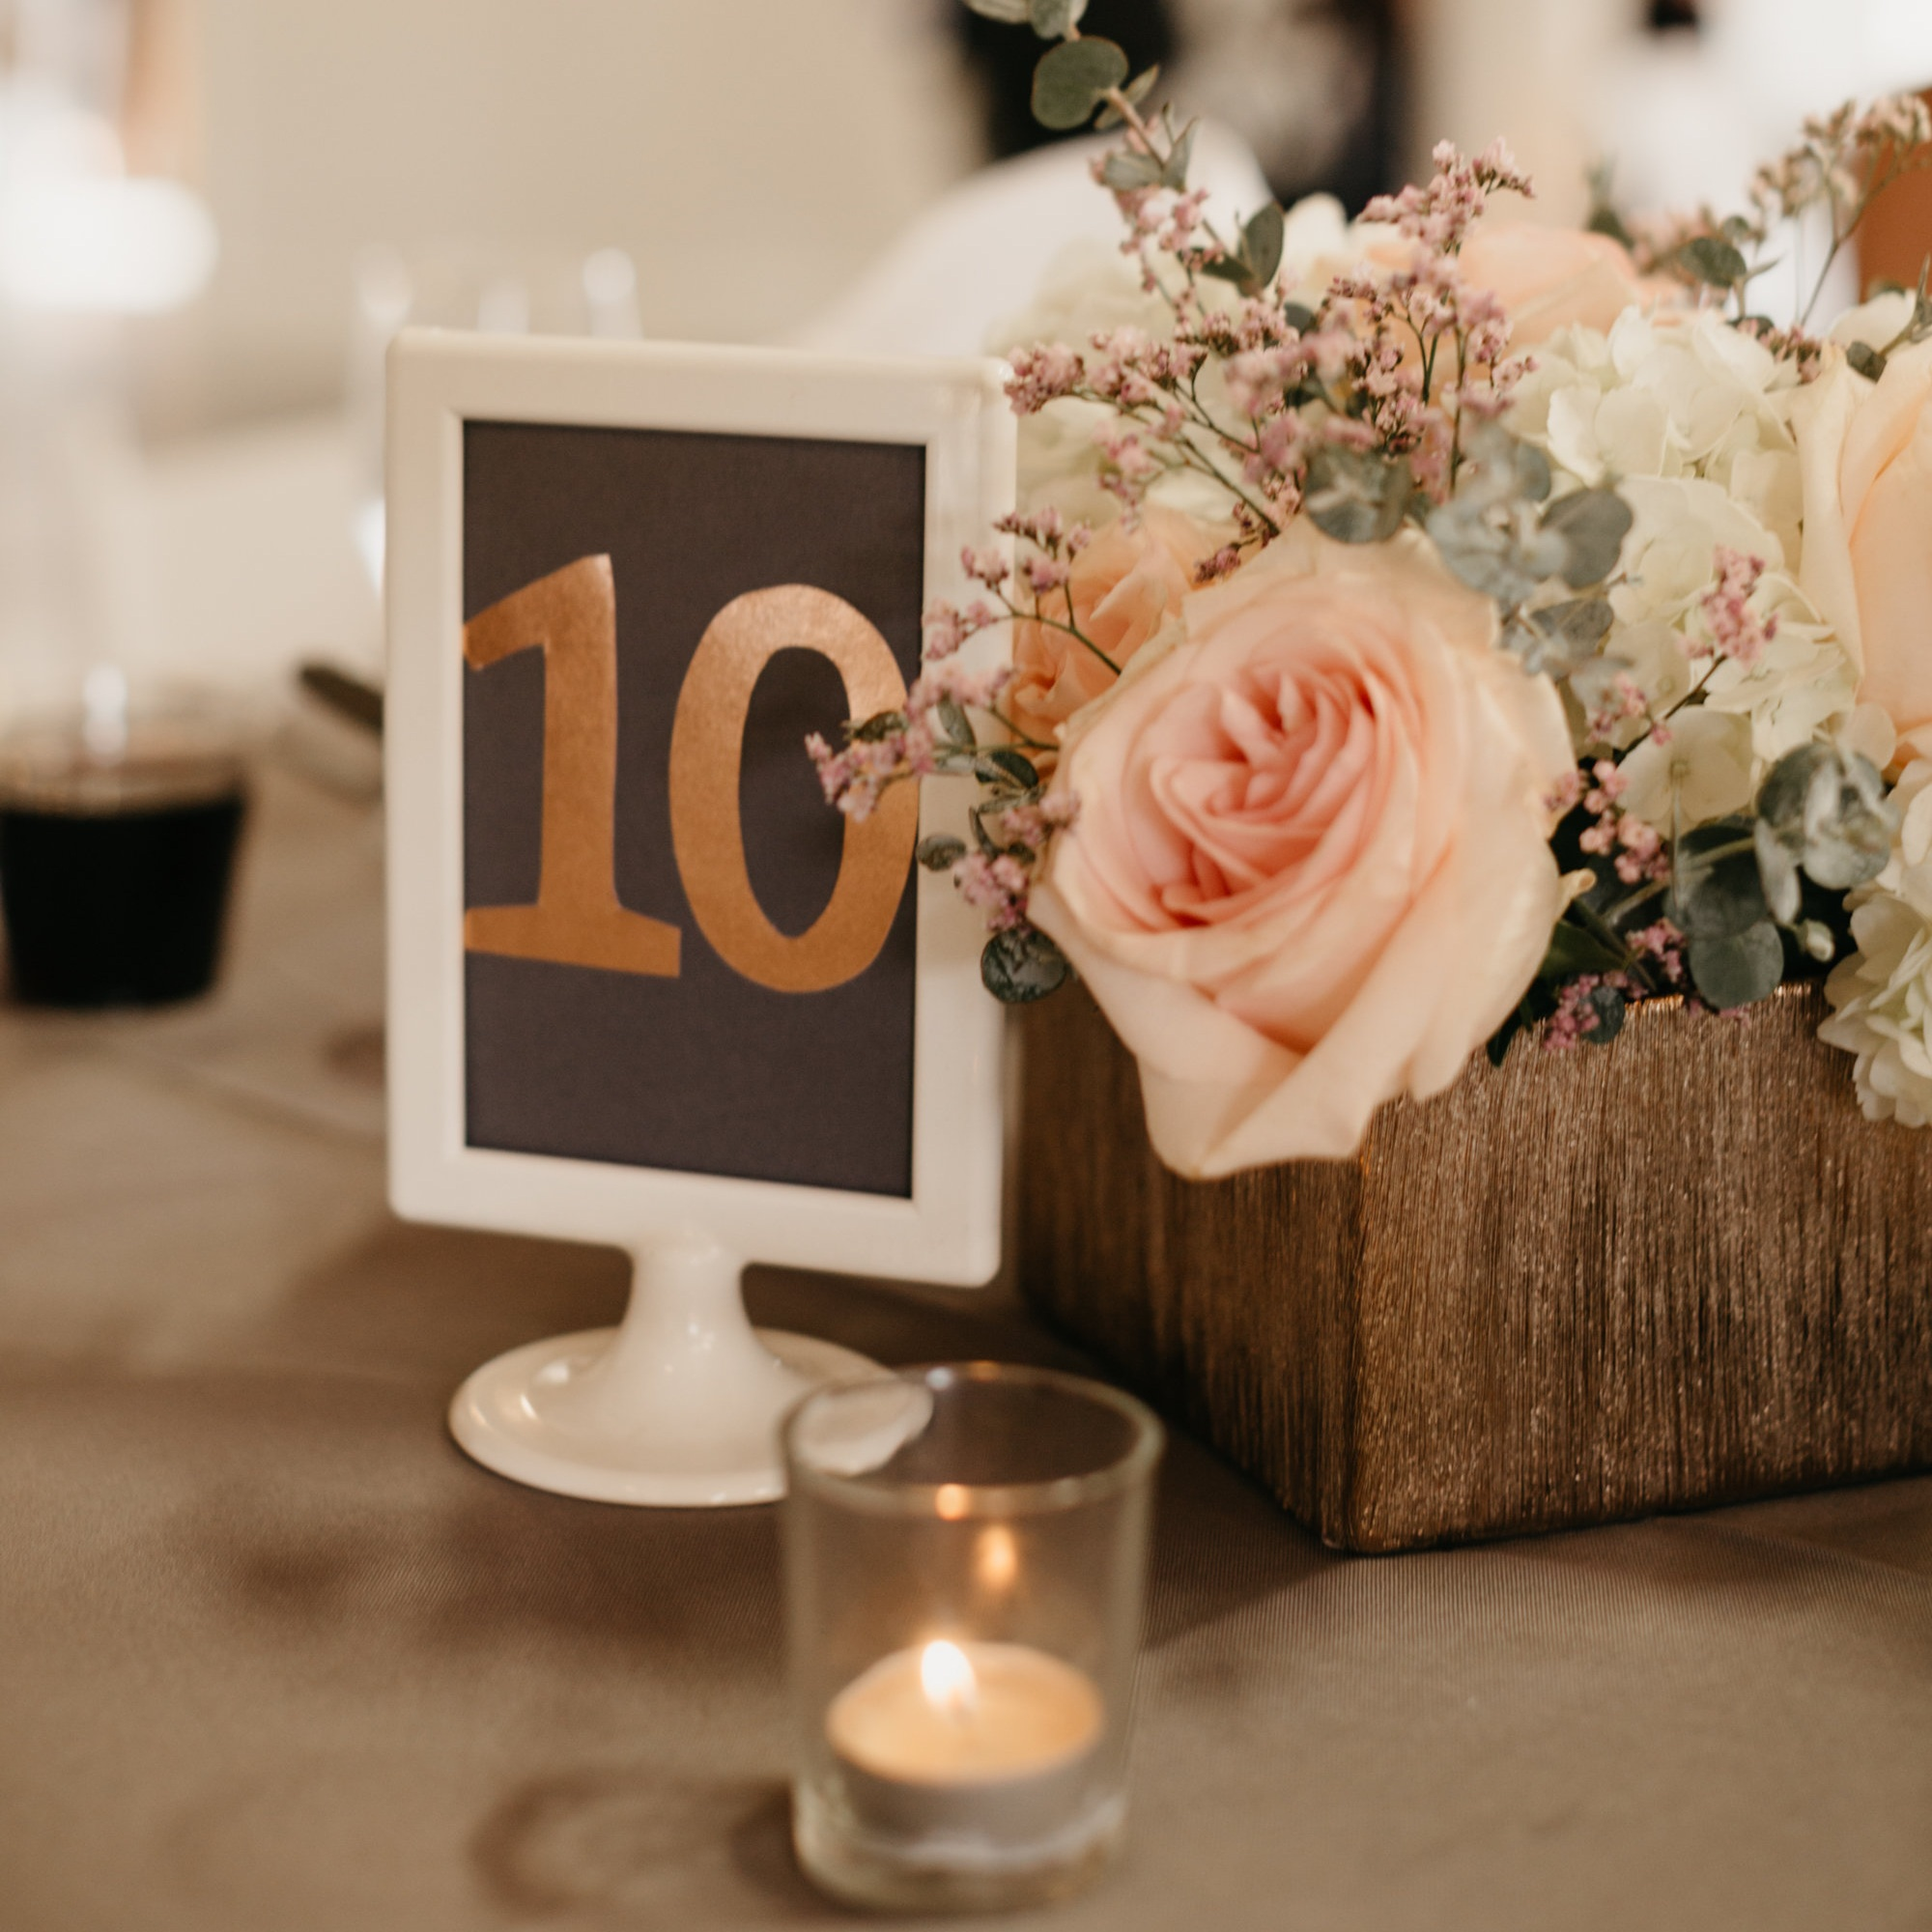 Peach and sage flower bouquet in a wooden planter box with a candle and white-framed table sign at Vista View Events in Colorado